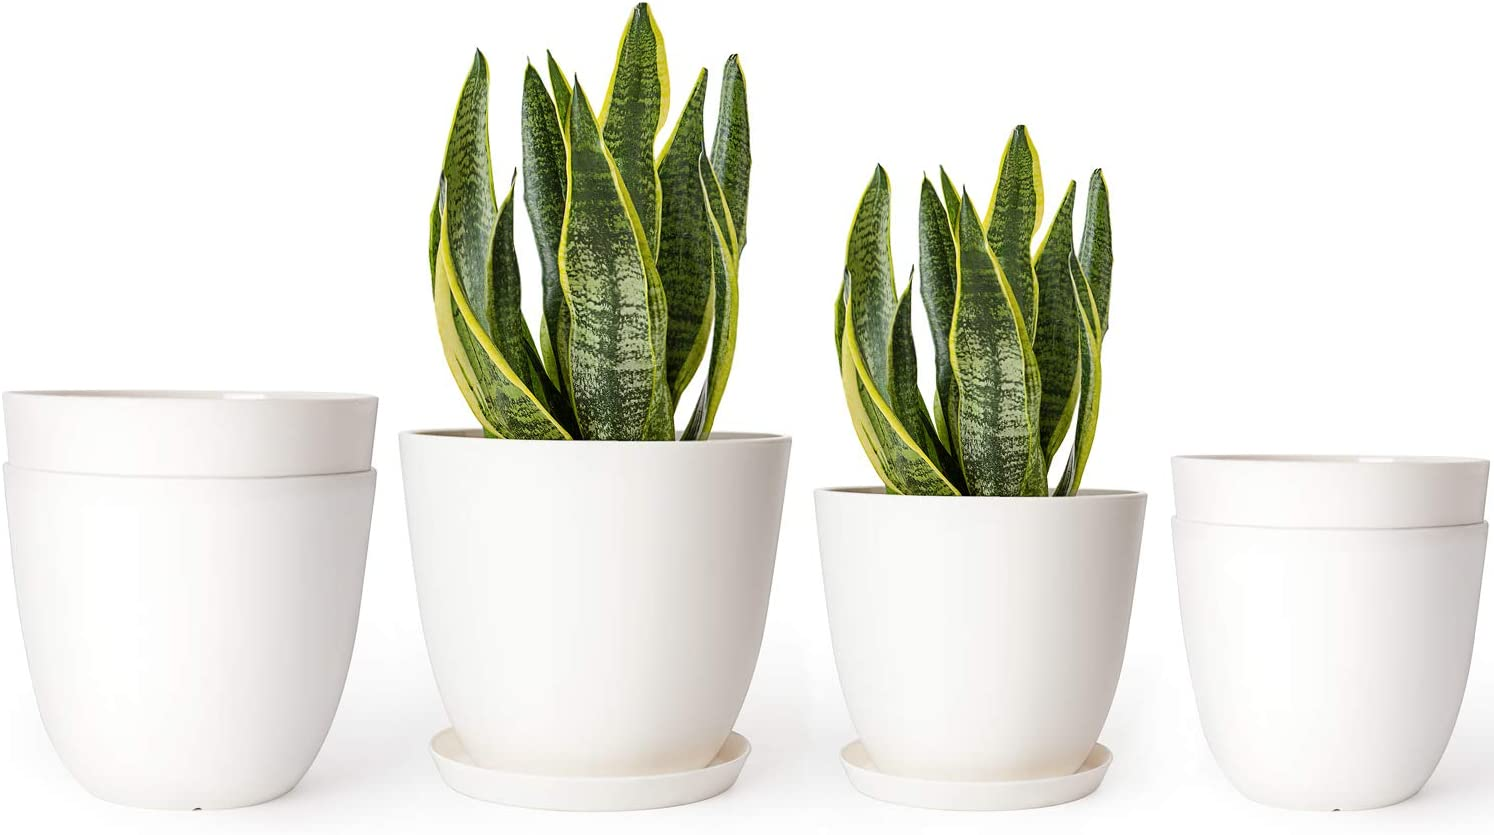 Mkono 5.5 and 6.5 Inch Plastic Planters Indoor Set of 6 Flower Plant Pots Modern Decorative Gardening Pot with Drainage and Tray for All House Plants, Herbs, Flowers, and Seed Nursery, Cream White